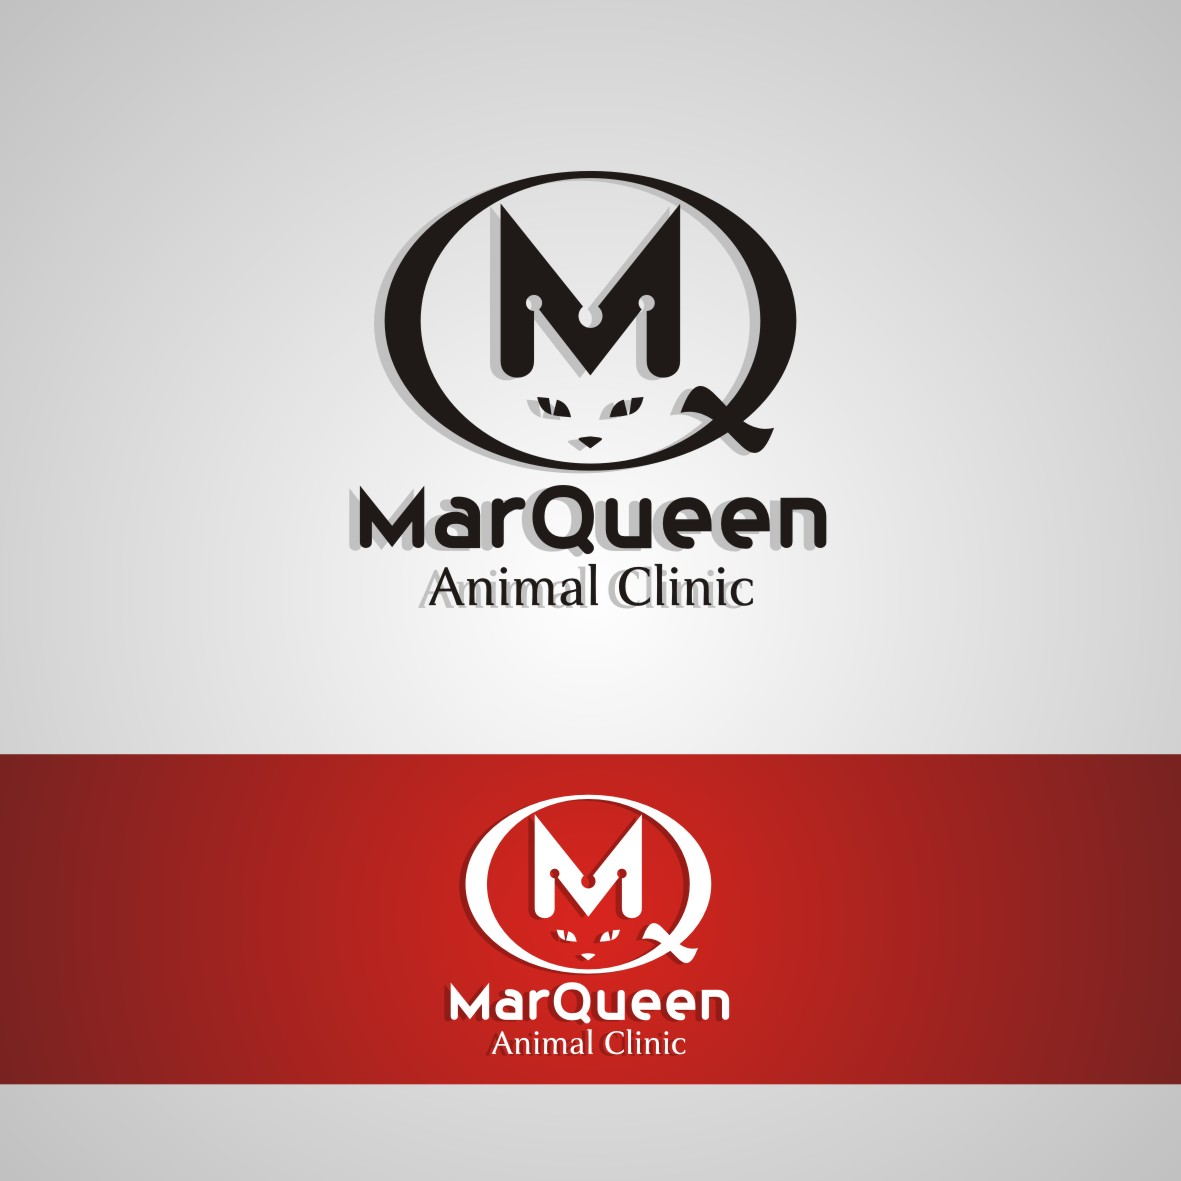 Logo Design by arteo_design - Entry No. 111 in the Logo Design Contest Fun Logo Design for MarQueen Animal Clinic.